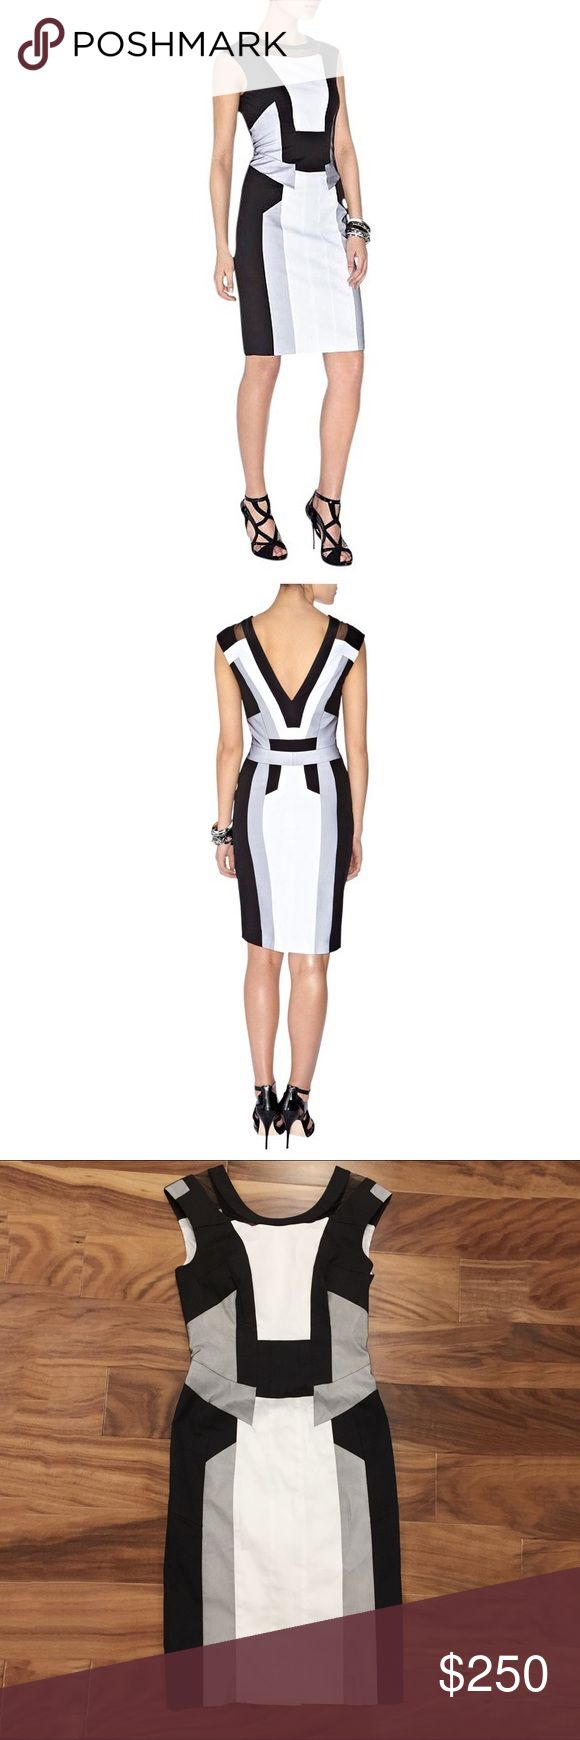 """karen millen • black & white graphic panel dress Gorgeous black & white graphic panel dress from Karen Millen. Features scoop neck front and v neck back, black mesh inset at collar and mesh panel overlays. Thick cotton poplin fabric, fully lined.   • size US 6 / UK 10 --- runs small, best for a size 4 or even a 2, please check measurements! • 33"""" bust 